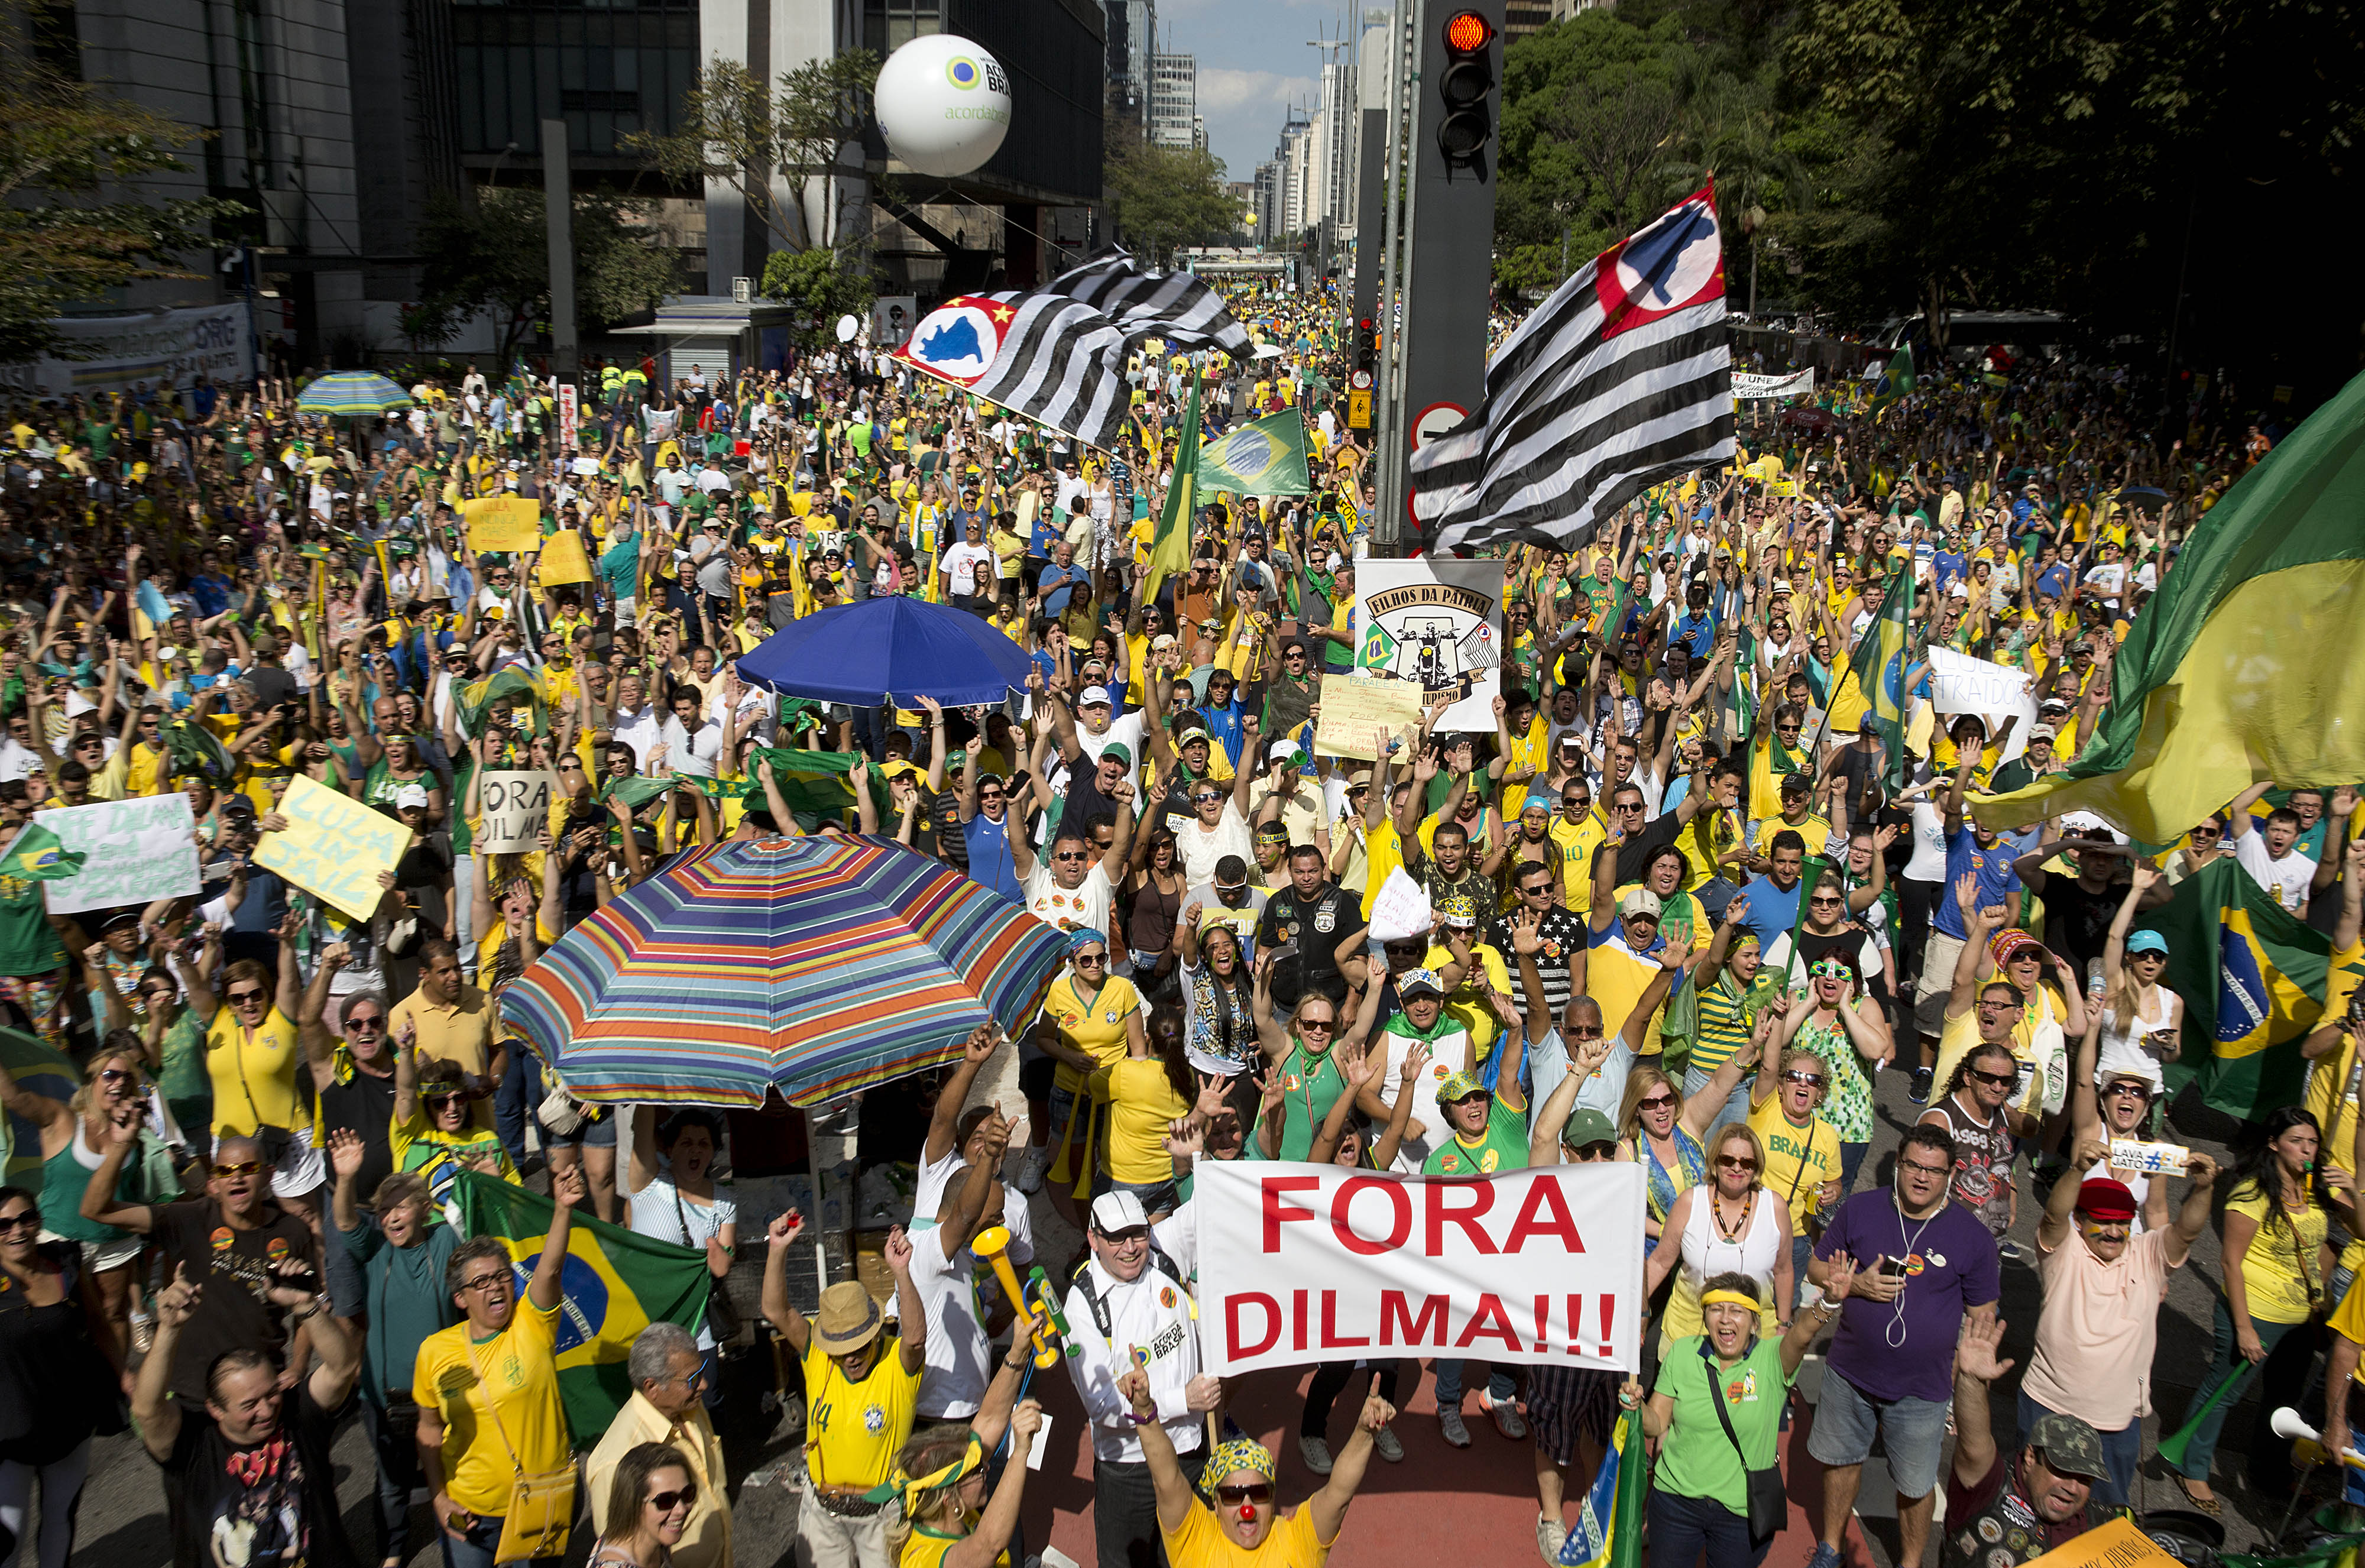 Demonstrators hold a sign that reads in Portuguese  Dilma out  during a protest demanding the impeachment of Brazil's President Dilma Rousseff in Sao Paulo, Brazil, Aug. 16, 2015